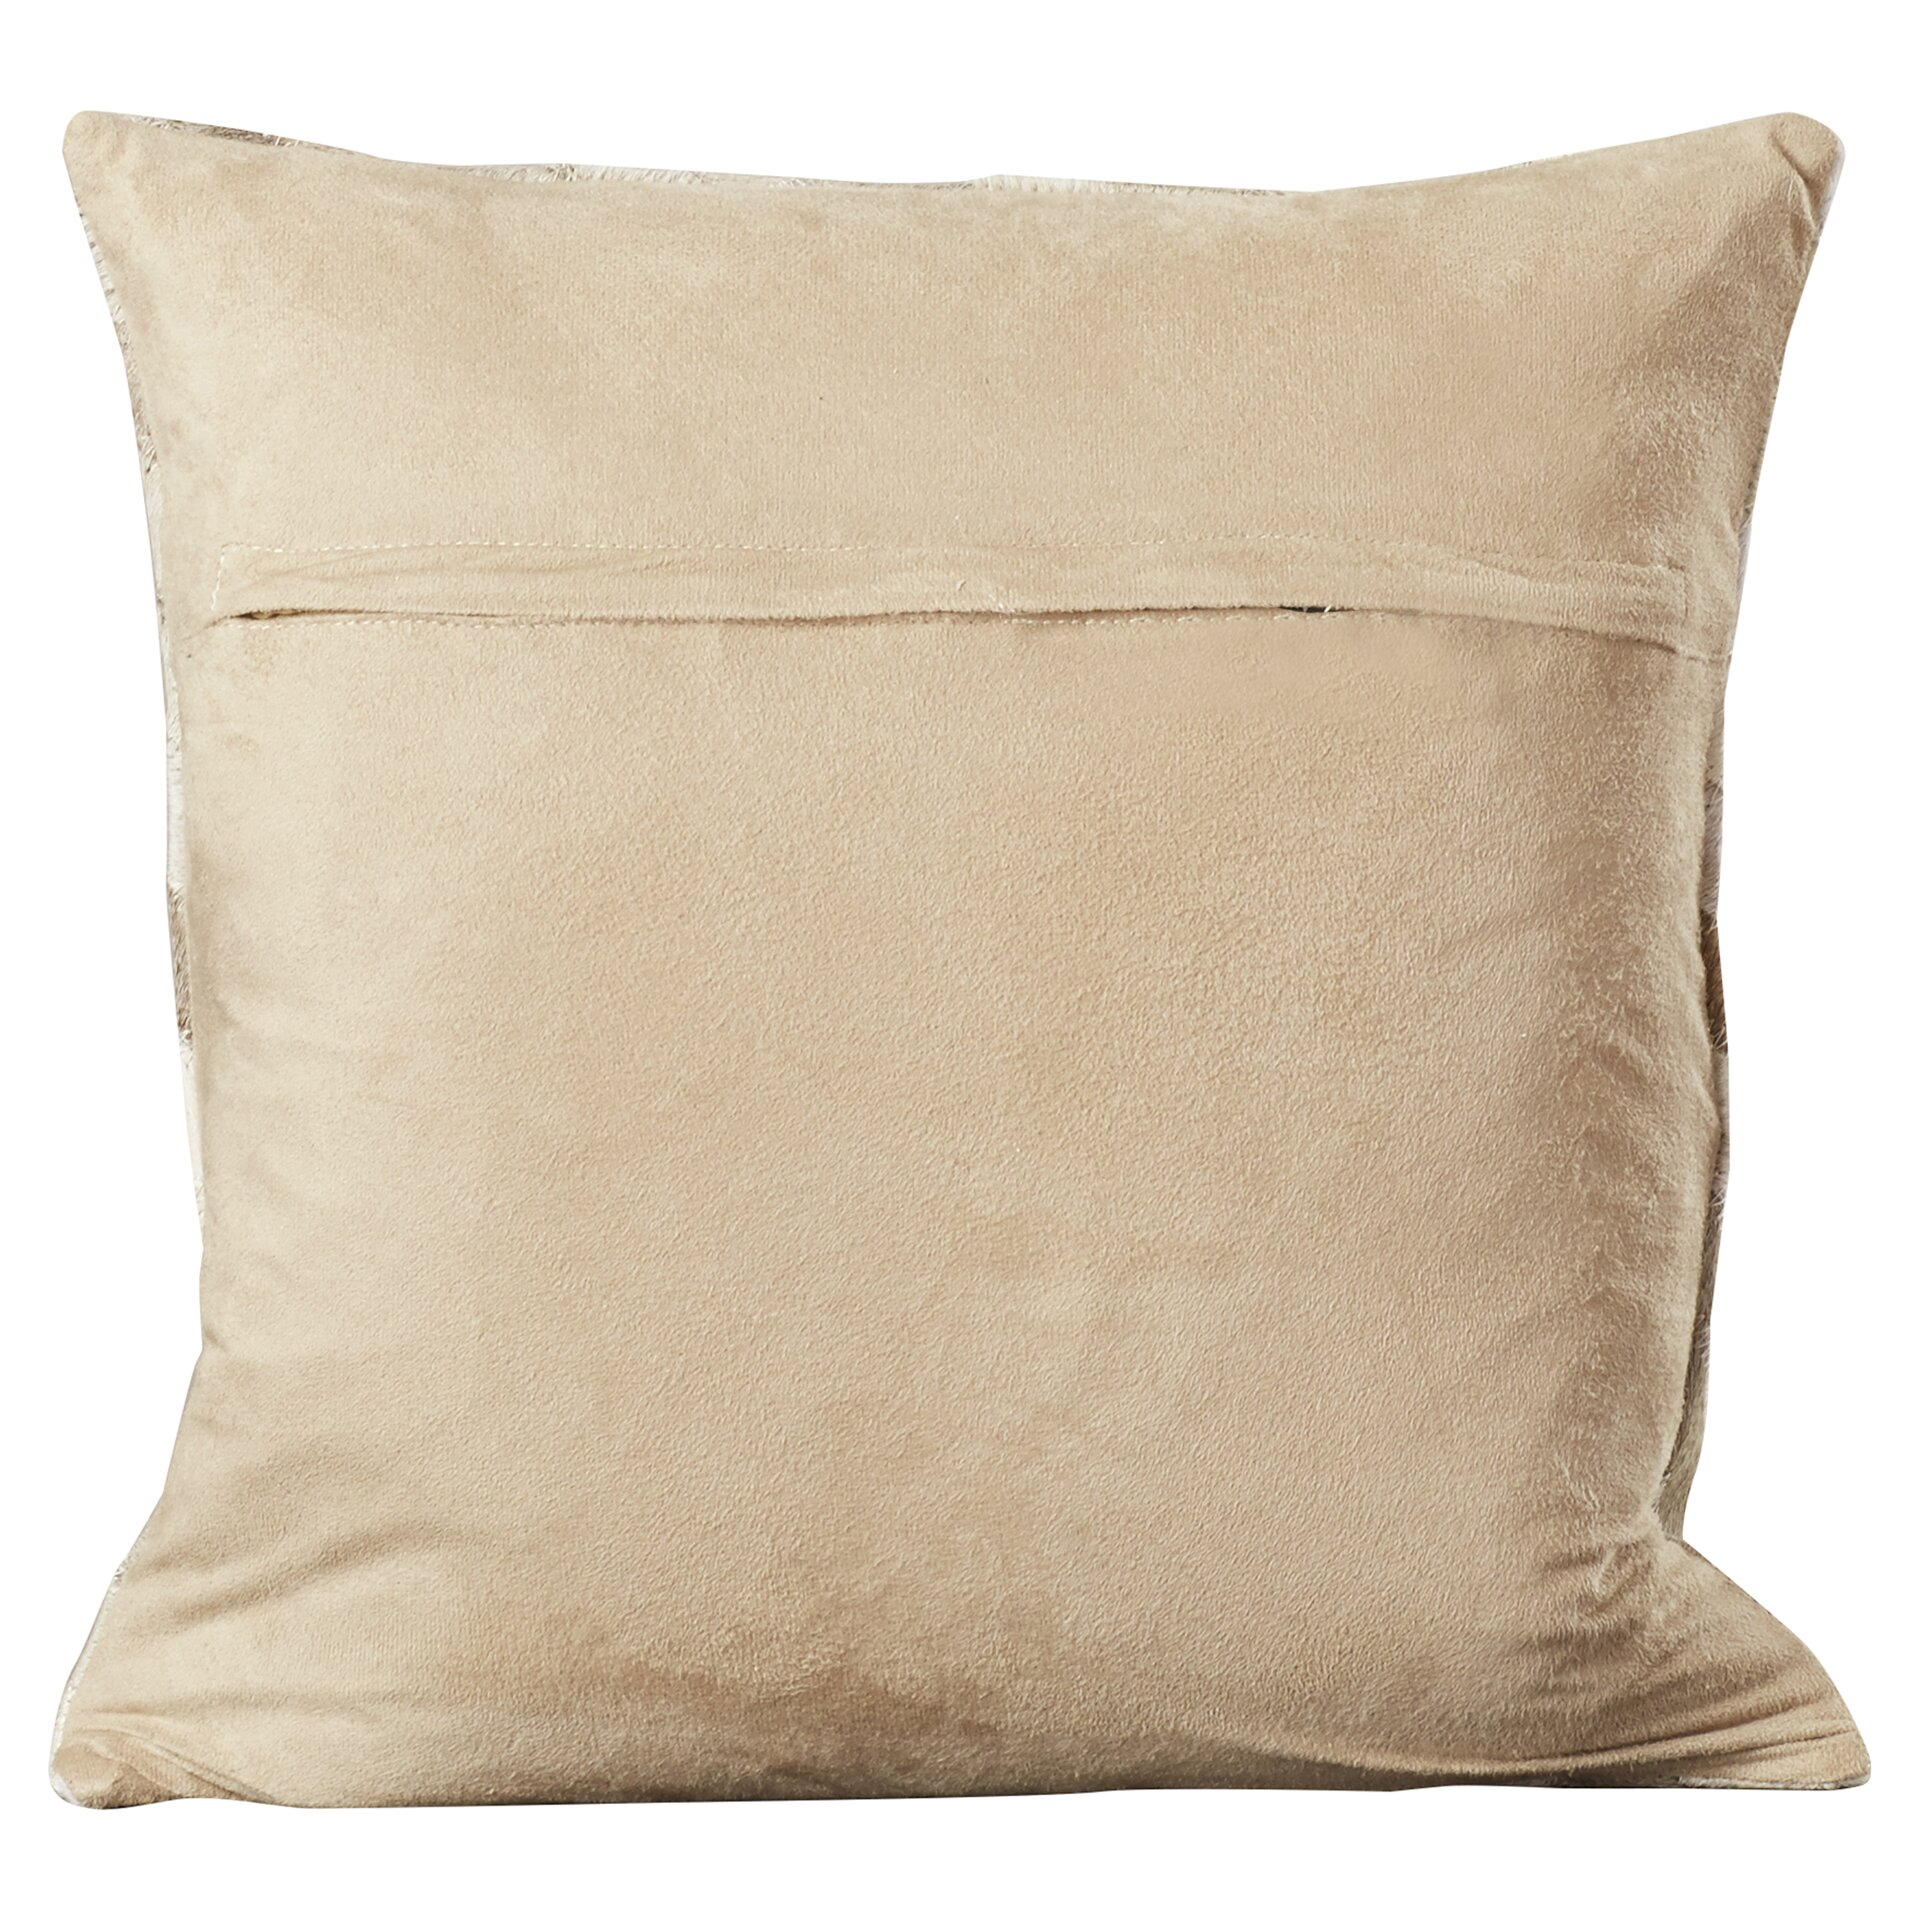 Max Studio Home Decorative Pillows : Brayden Studio Whitchurch Feather Throw Pillow & Reviews Wayfair